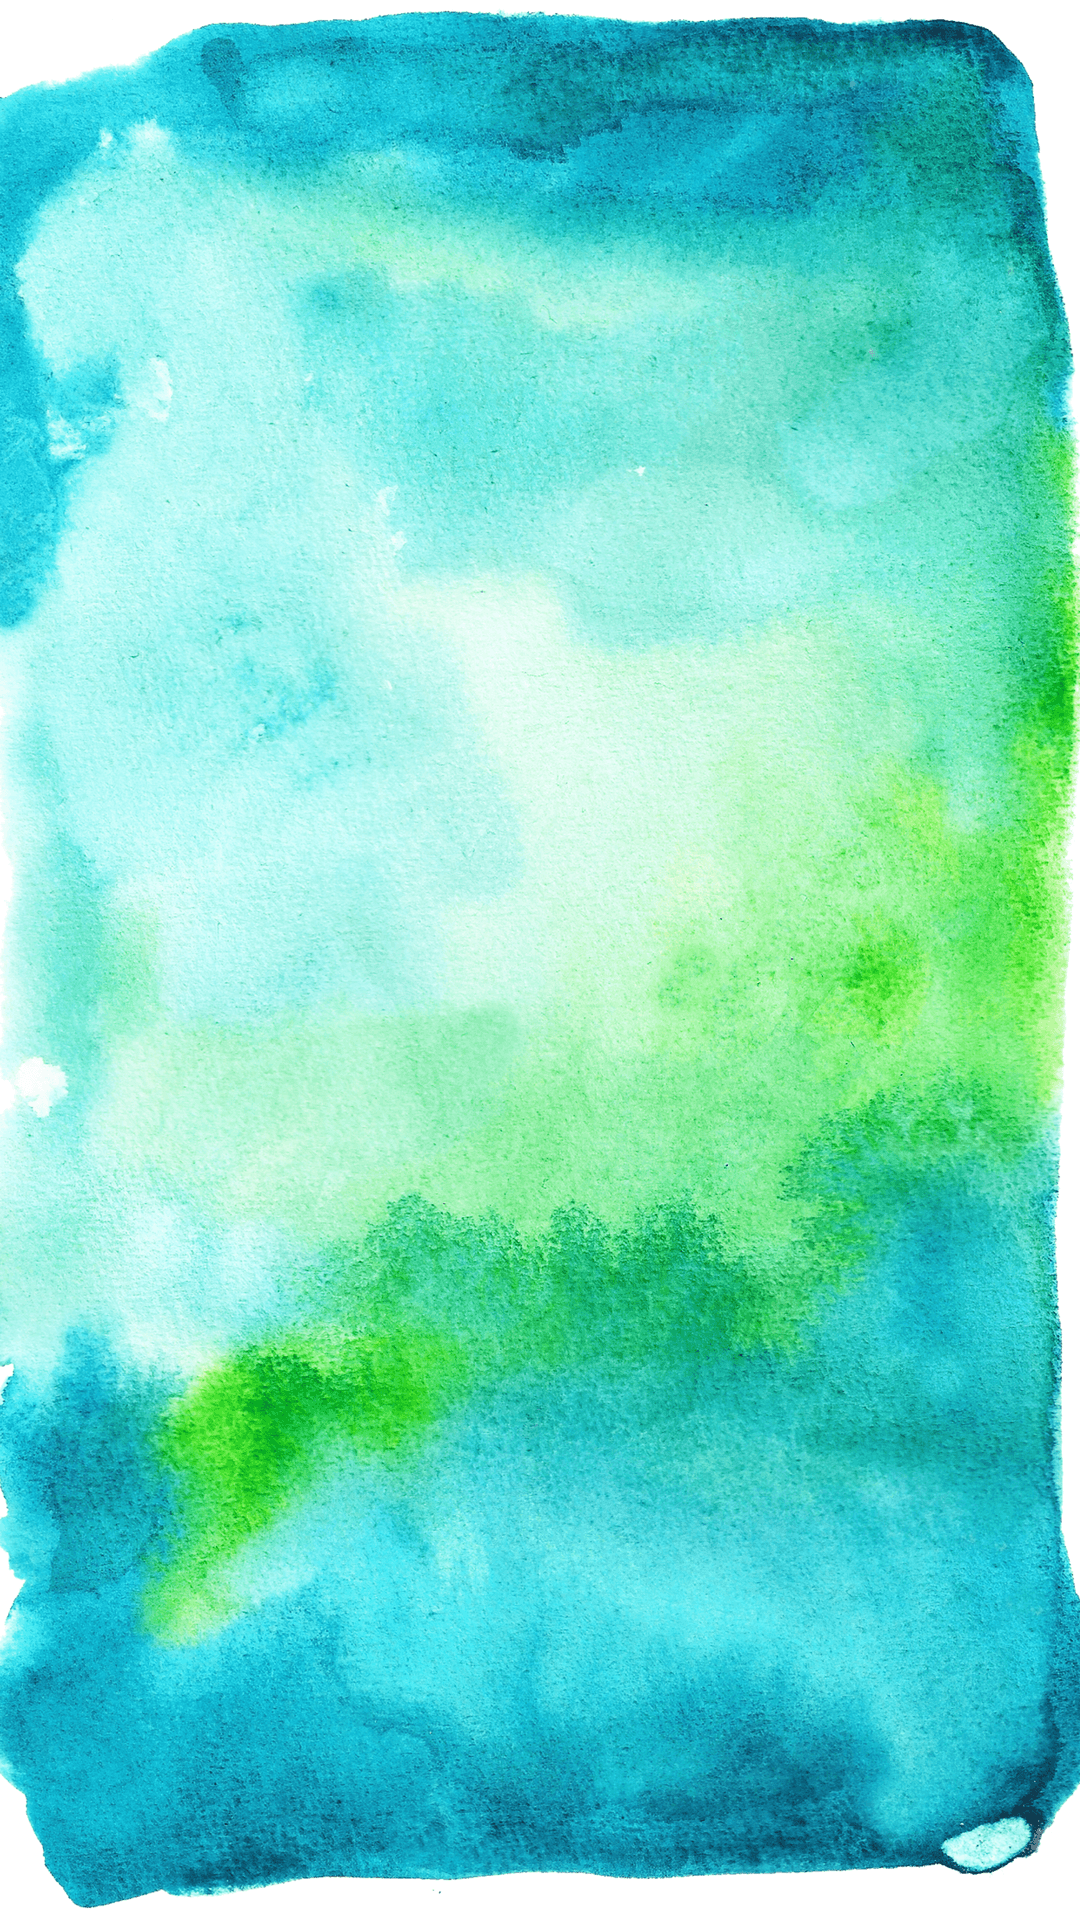 Watercolor Wallpapers - Top Free Watercolor Backgrounds ...